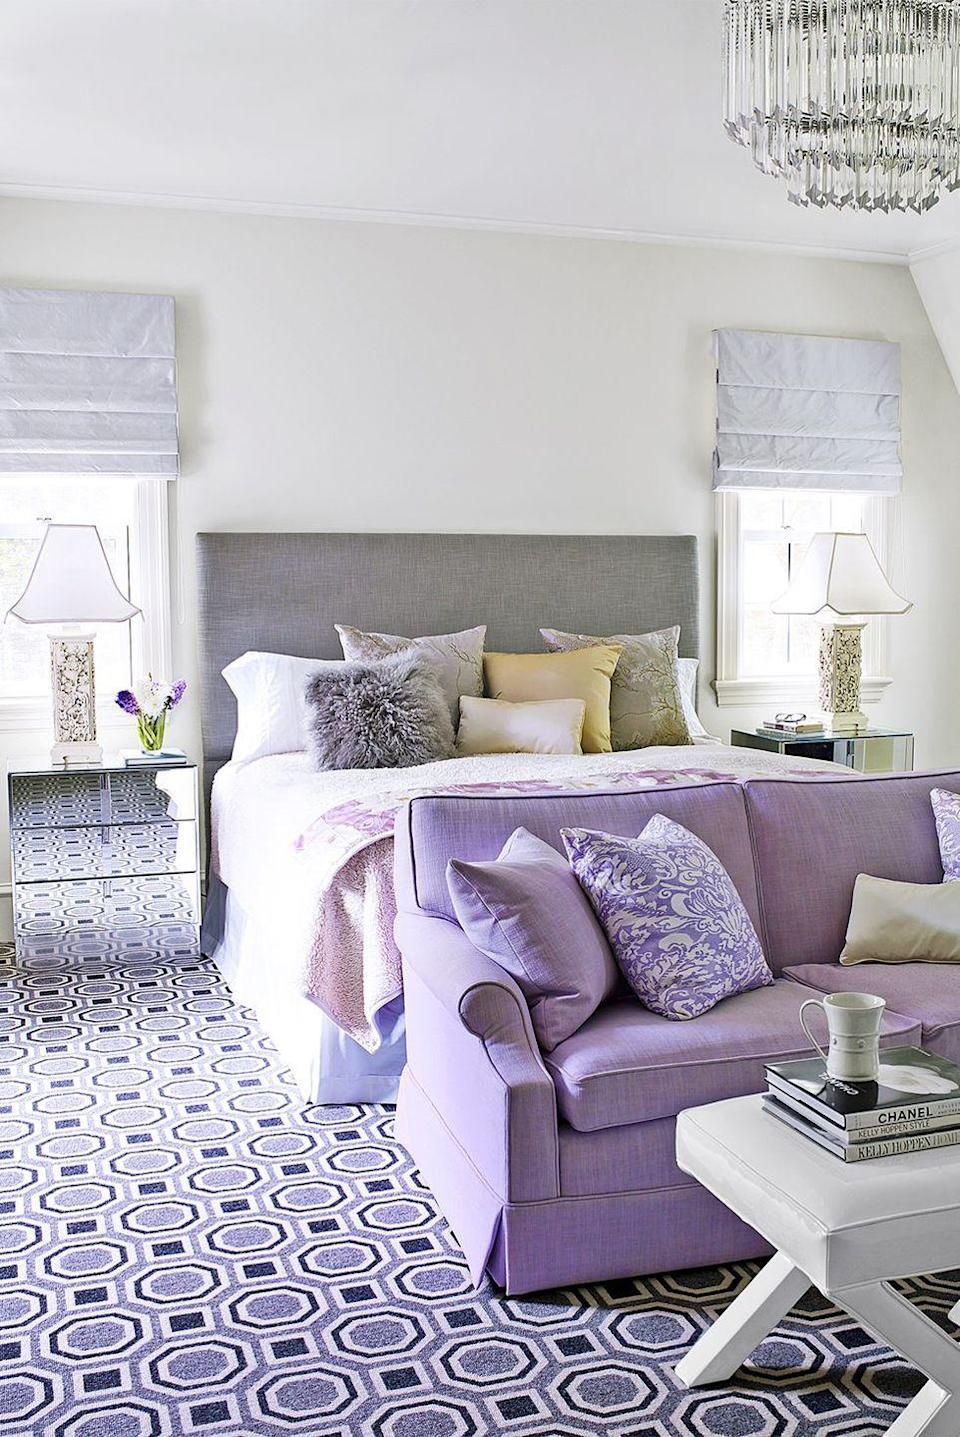 <p>When paired with versatile neutrals, glam decorative pieces like a statement rug, a crystal chandelier, and mirrored nightstands can really shine.</p>